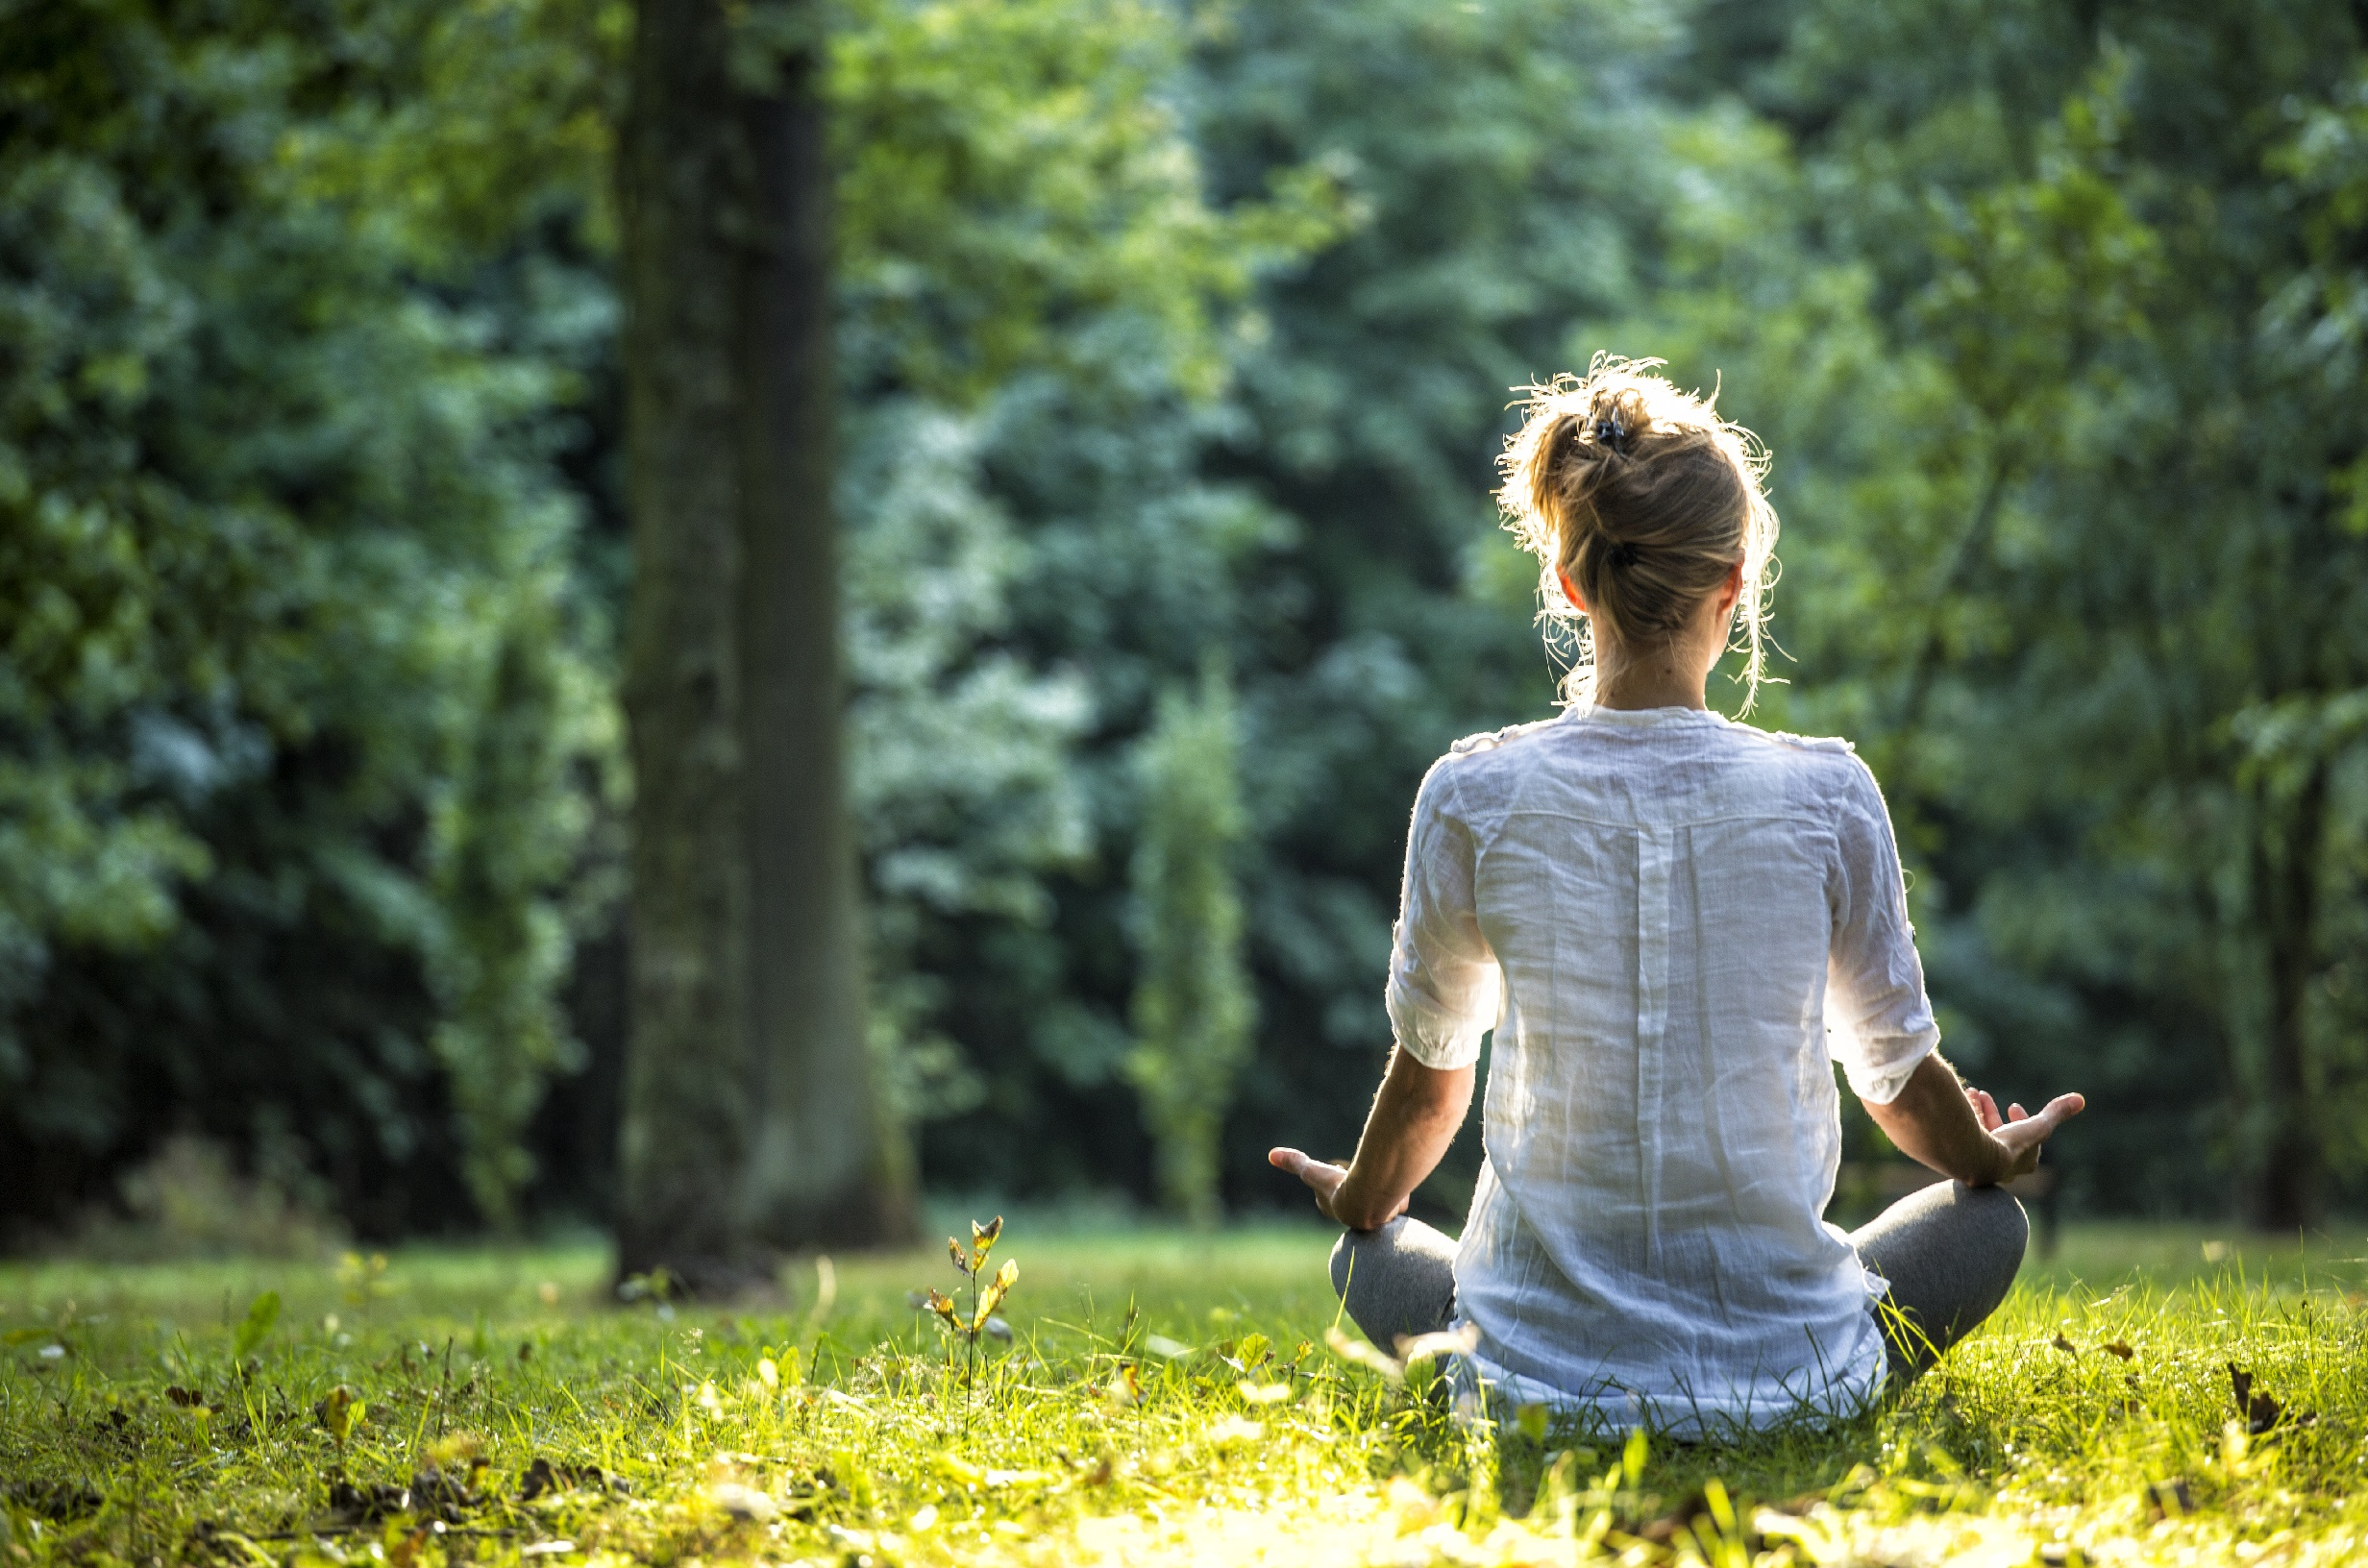 Meditating Meaning And Purpose In Our Life